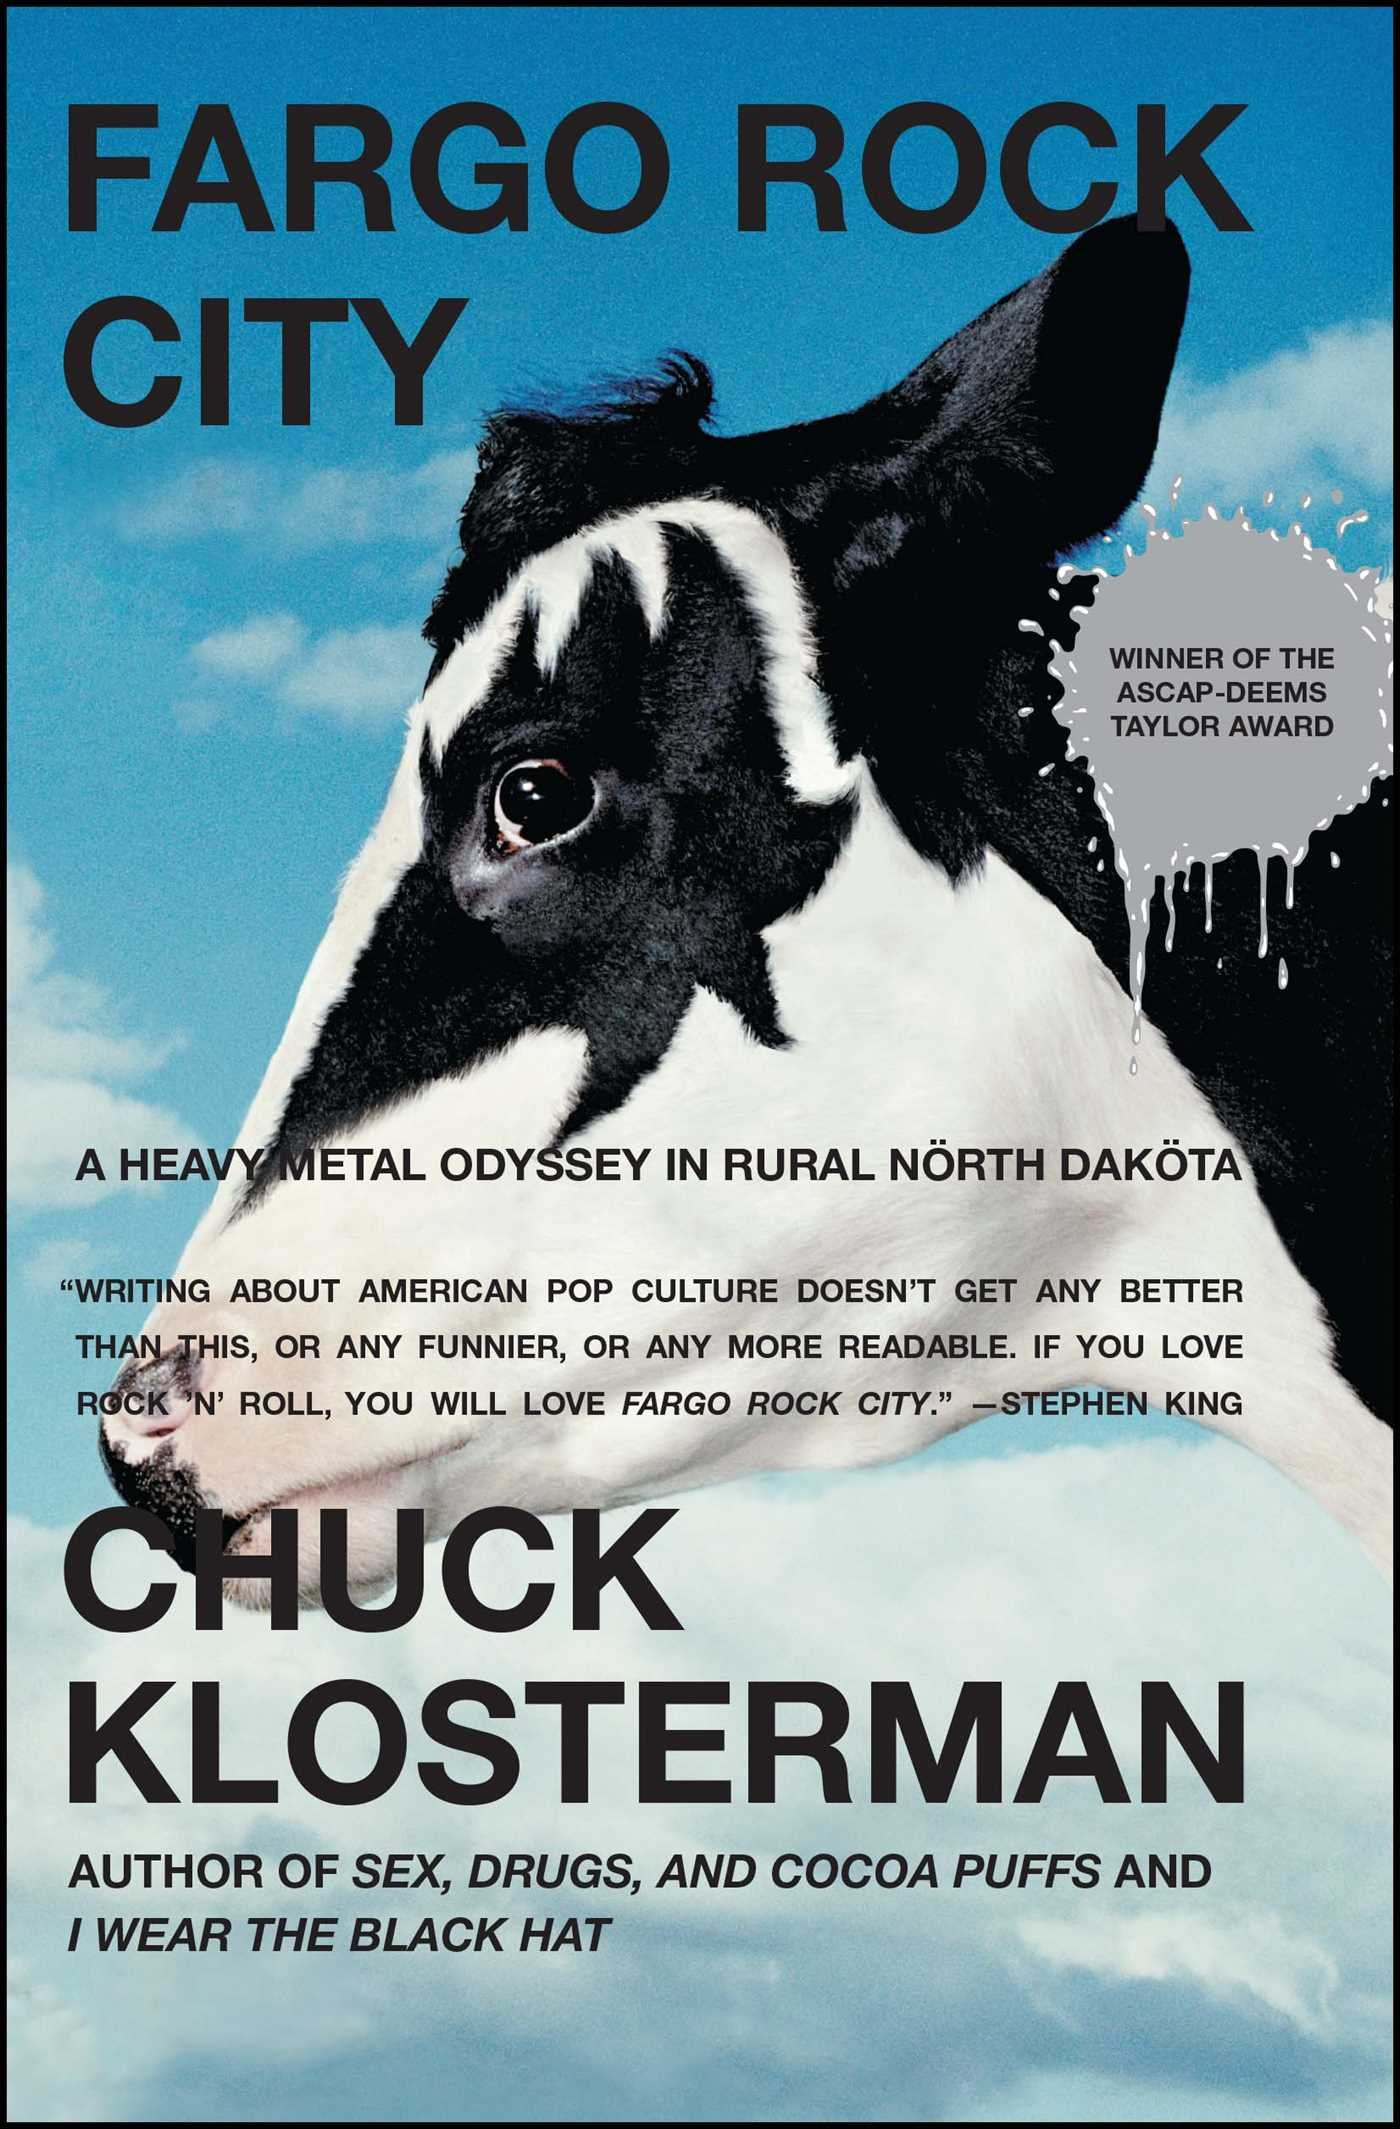 Fargo rock city a heavy metal odyssey in rural north dakota chuck fargo rock city a heavy metal odyssey in rural north dakota chuck klosterman 9780743406567 amazon books fandeluxe Image collections